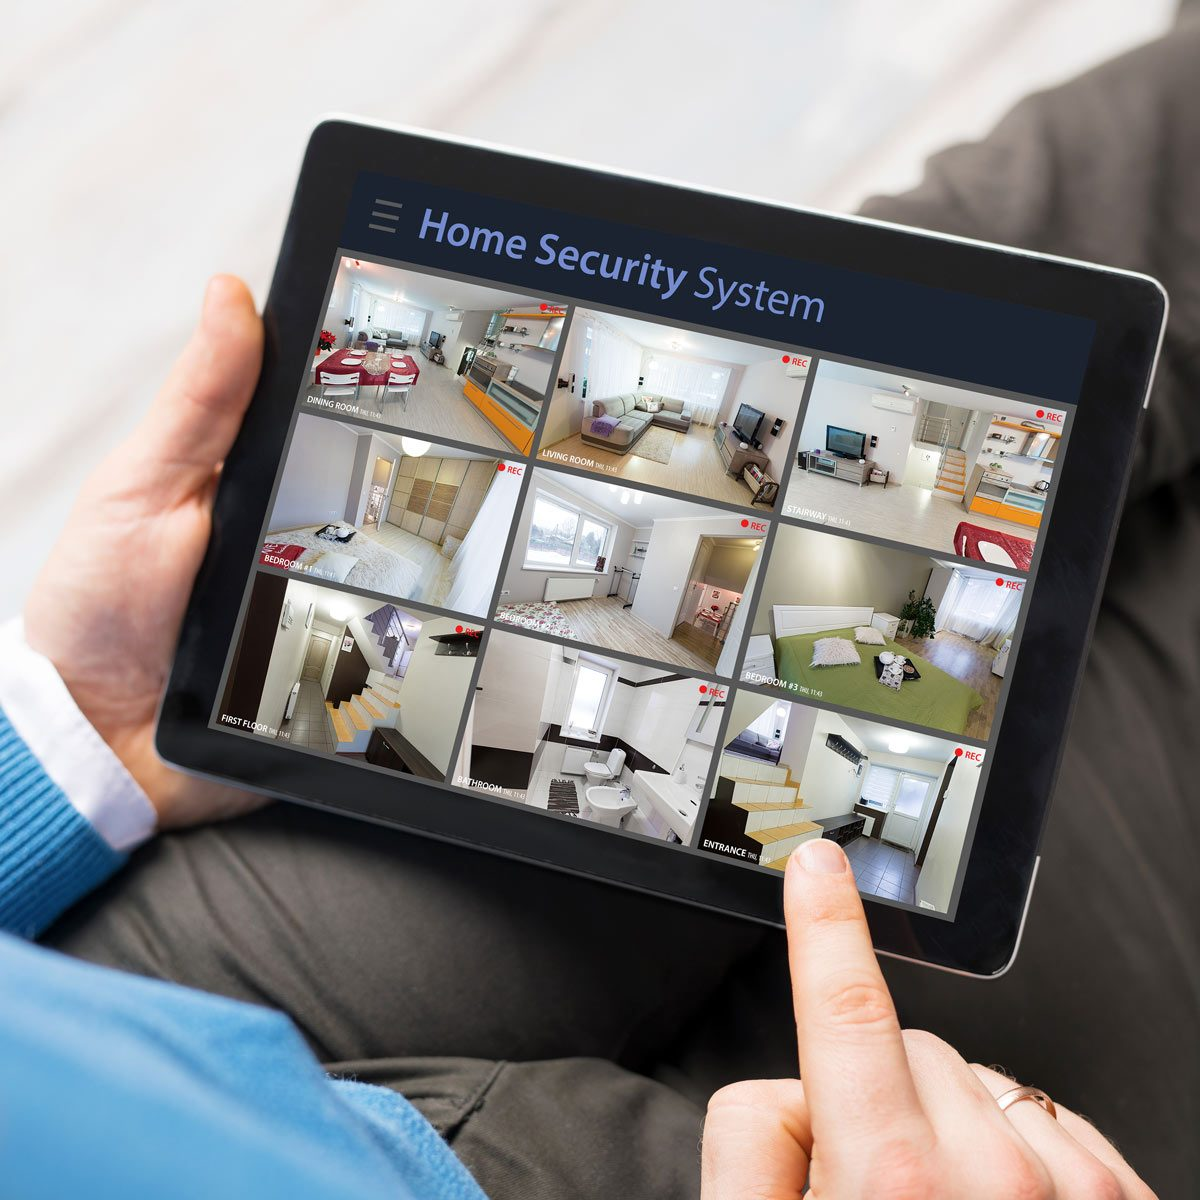 Home Security Camera System-What You Need To Know